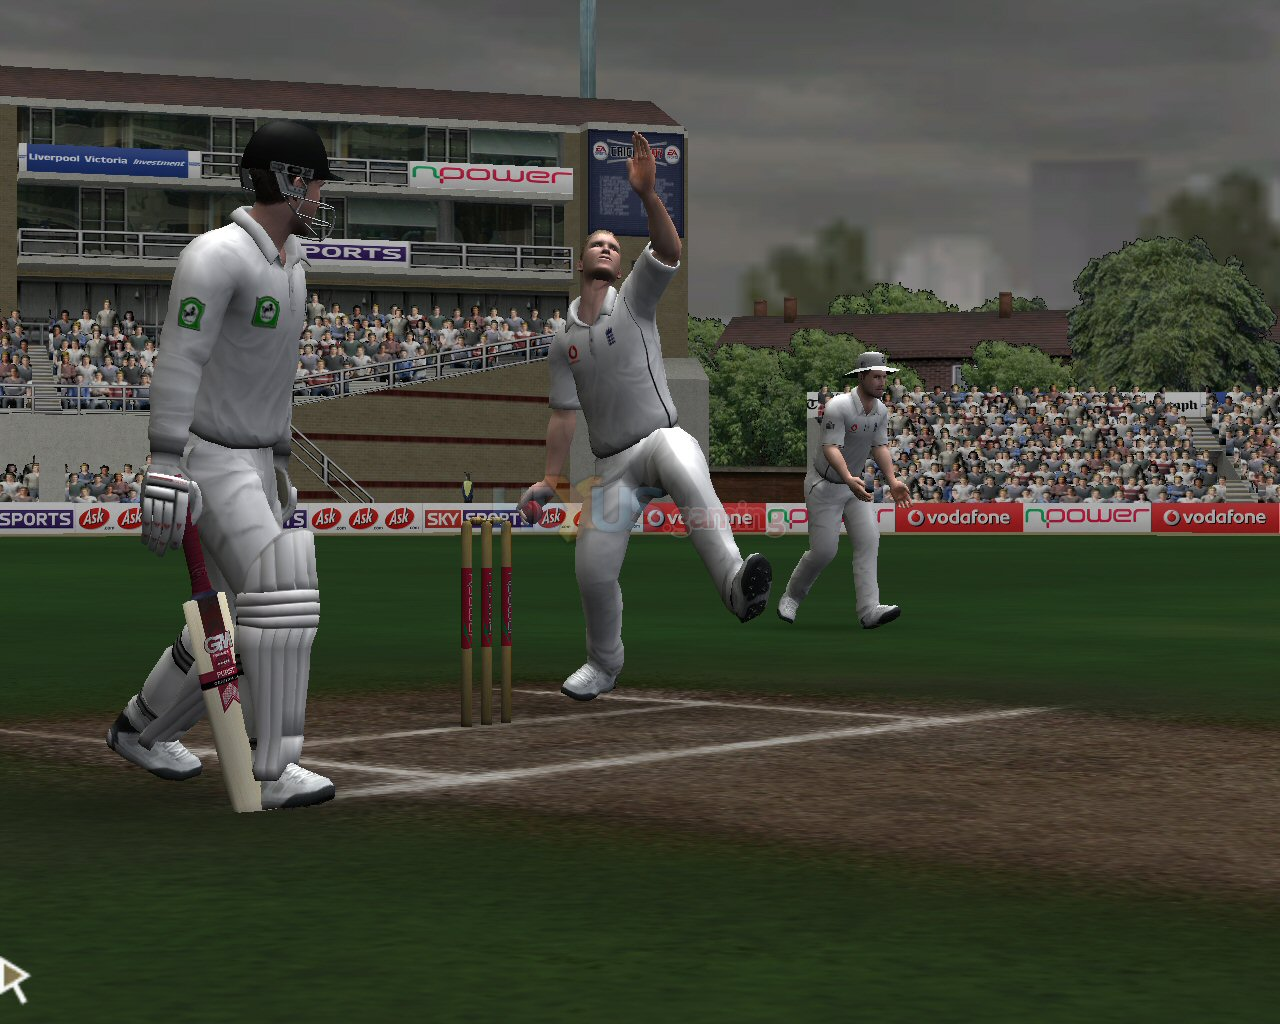 EA Sports Cricket 07 - PC & PS2 - PS2 - Feature - HEXUS net